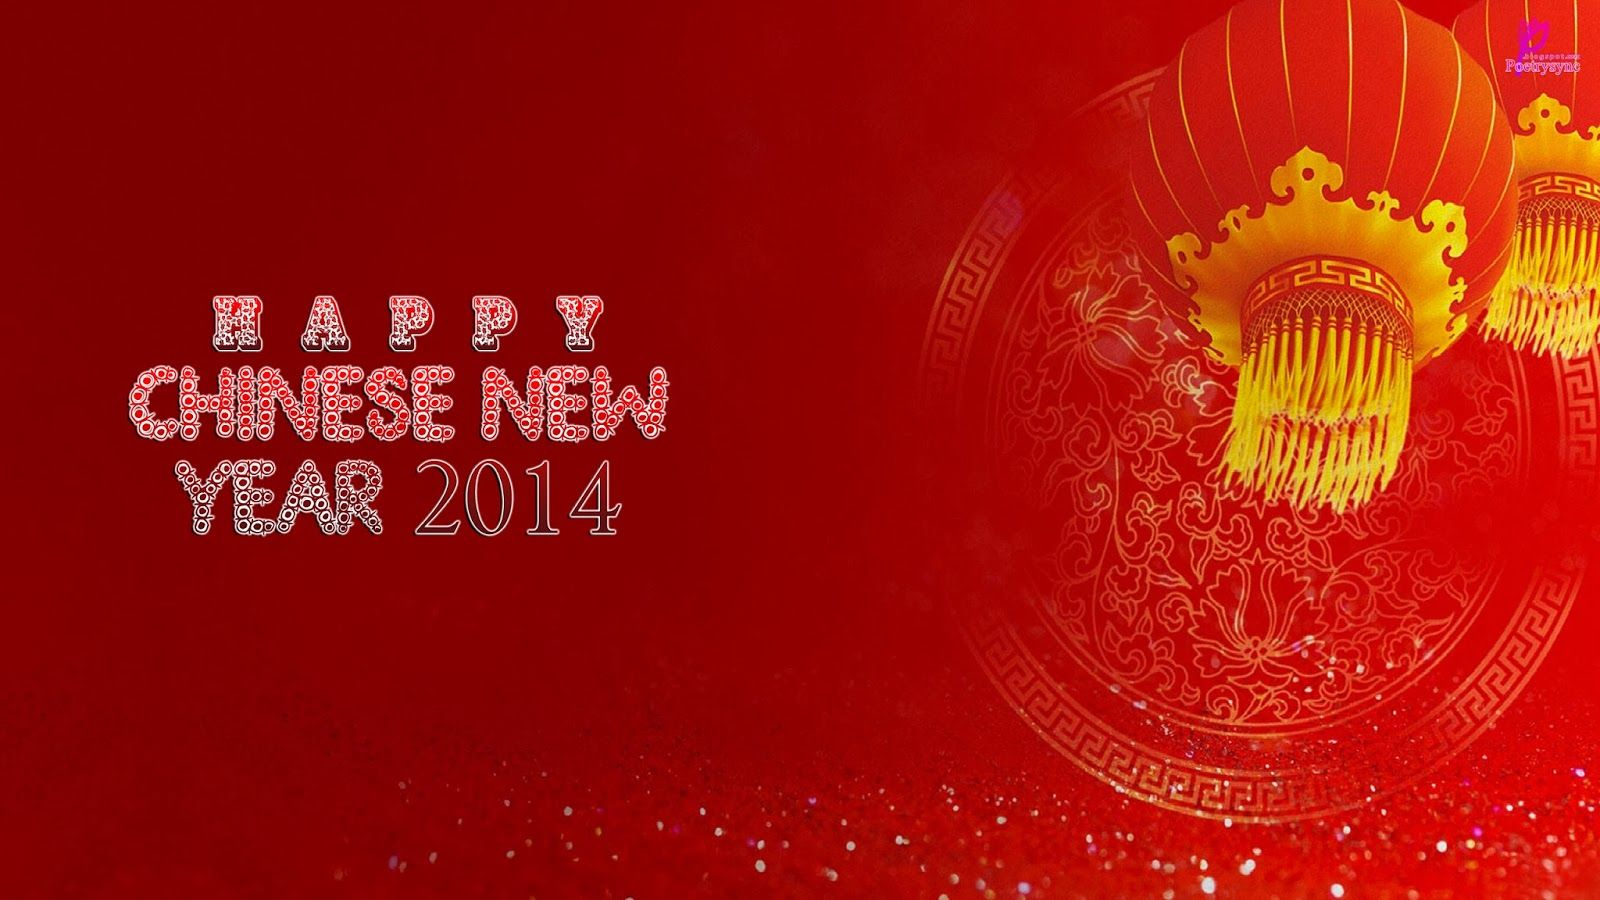 Happy chinese new year 2014 lunar new year 2014 wishes and greetings happy chinese new year 2014 lunar new year 2014 wishes and greetings wallpaper pictures m4hsunfo